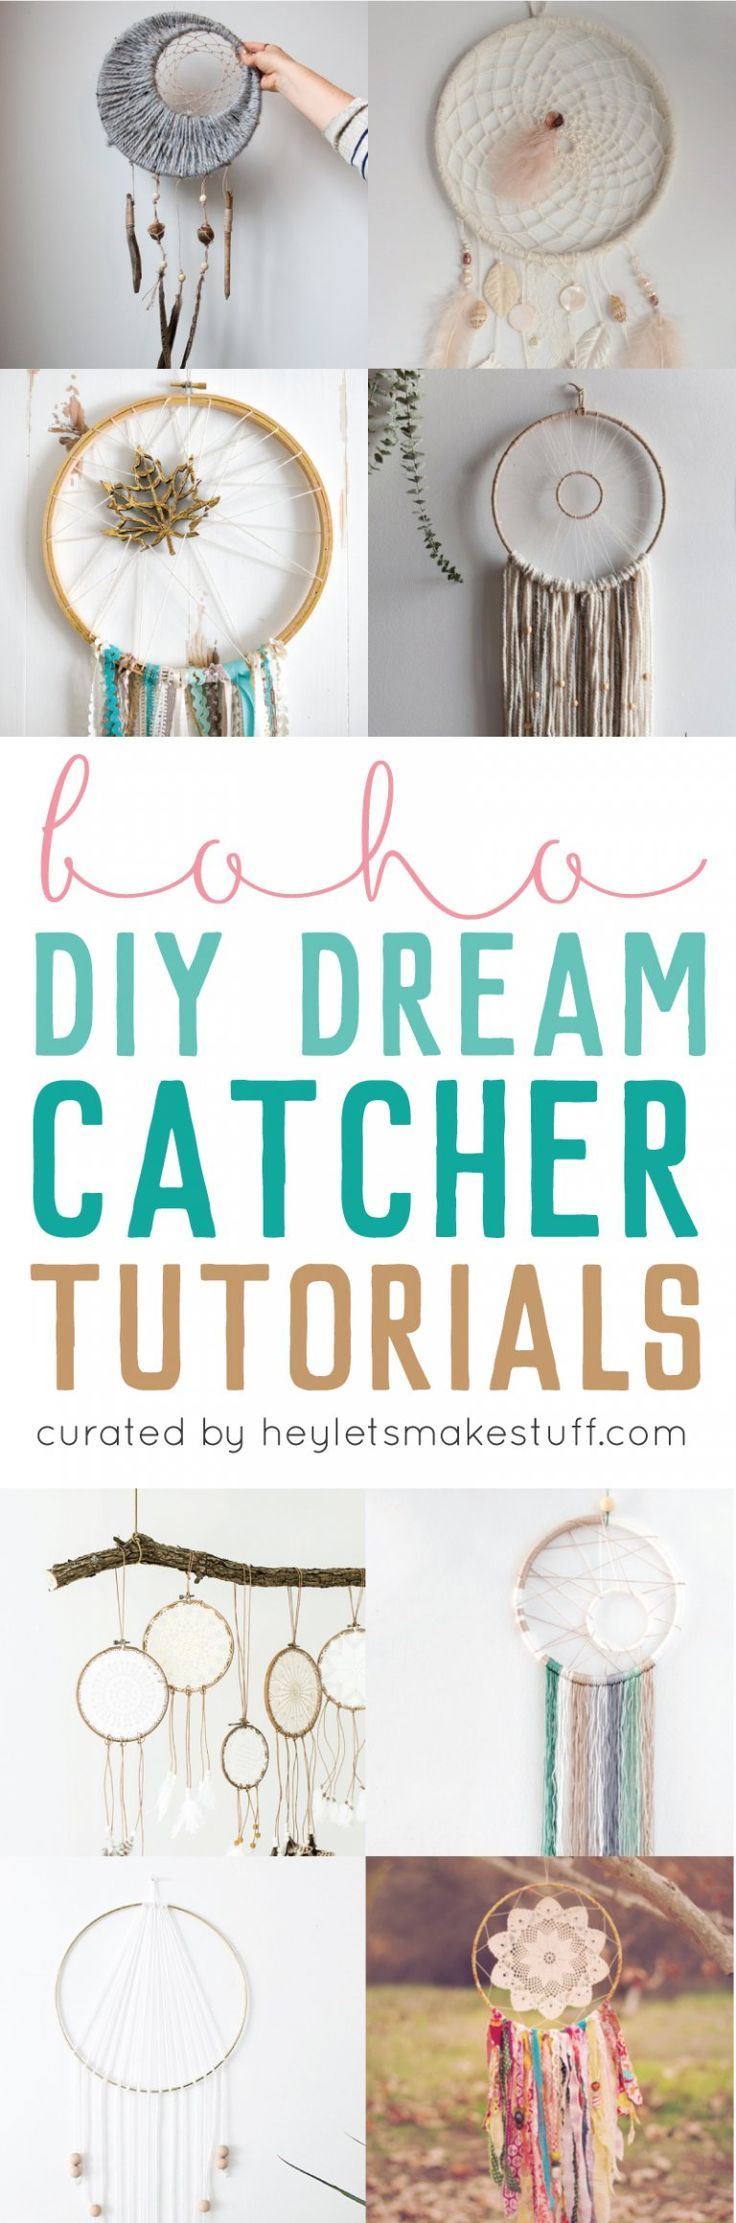 best things to makesewingcrafts images on pinterest